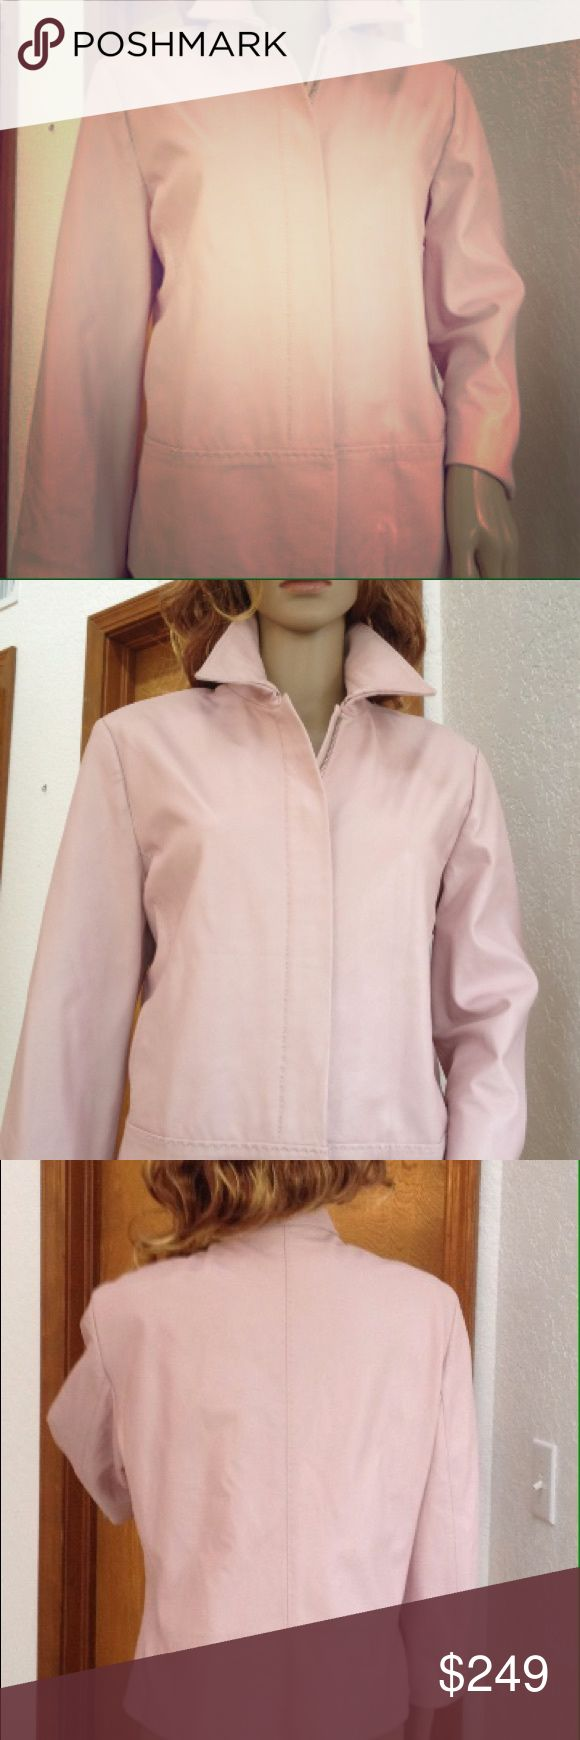 Pink Leather Blazer Jacket by Italian Cerruti 1881 Elegant blazer/jacket with decorative seams, lined in quality pink 100% viscose/rayon, hidden zipper and knobs made of strong metal. Collar nicely emphasizes the neckline. Soft leather in a great condition: in some places has some point size discolorations but it does't take away from the beauty of pink leather. Will age gracefully, Lining has some tiny spots, nothing showy, see pic. Don't  miss out to own timeless Cerruti 1881's creation…